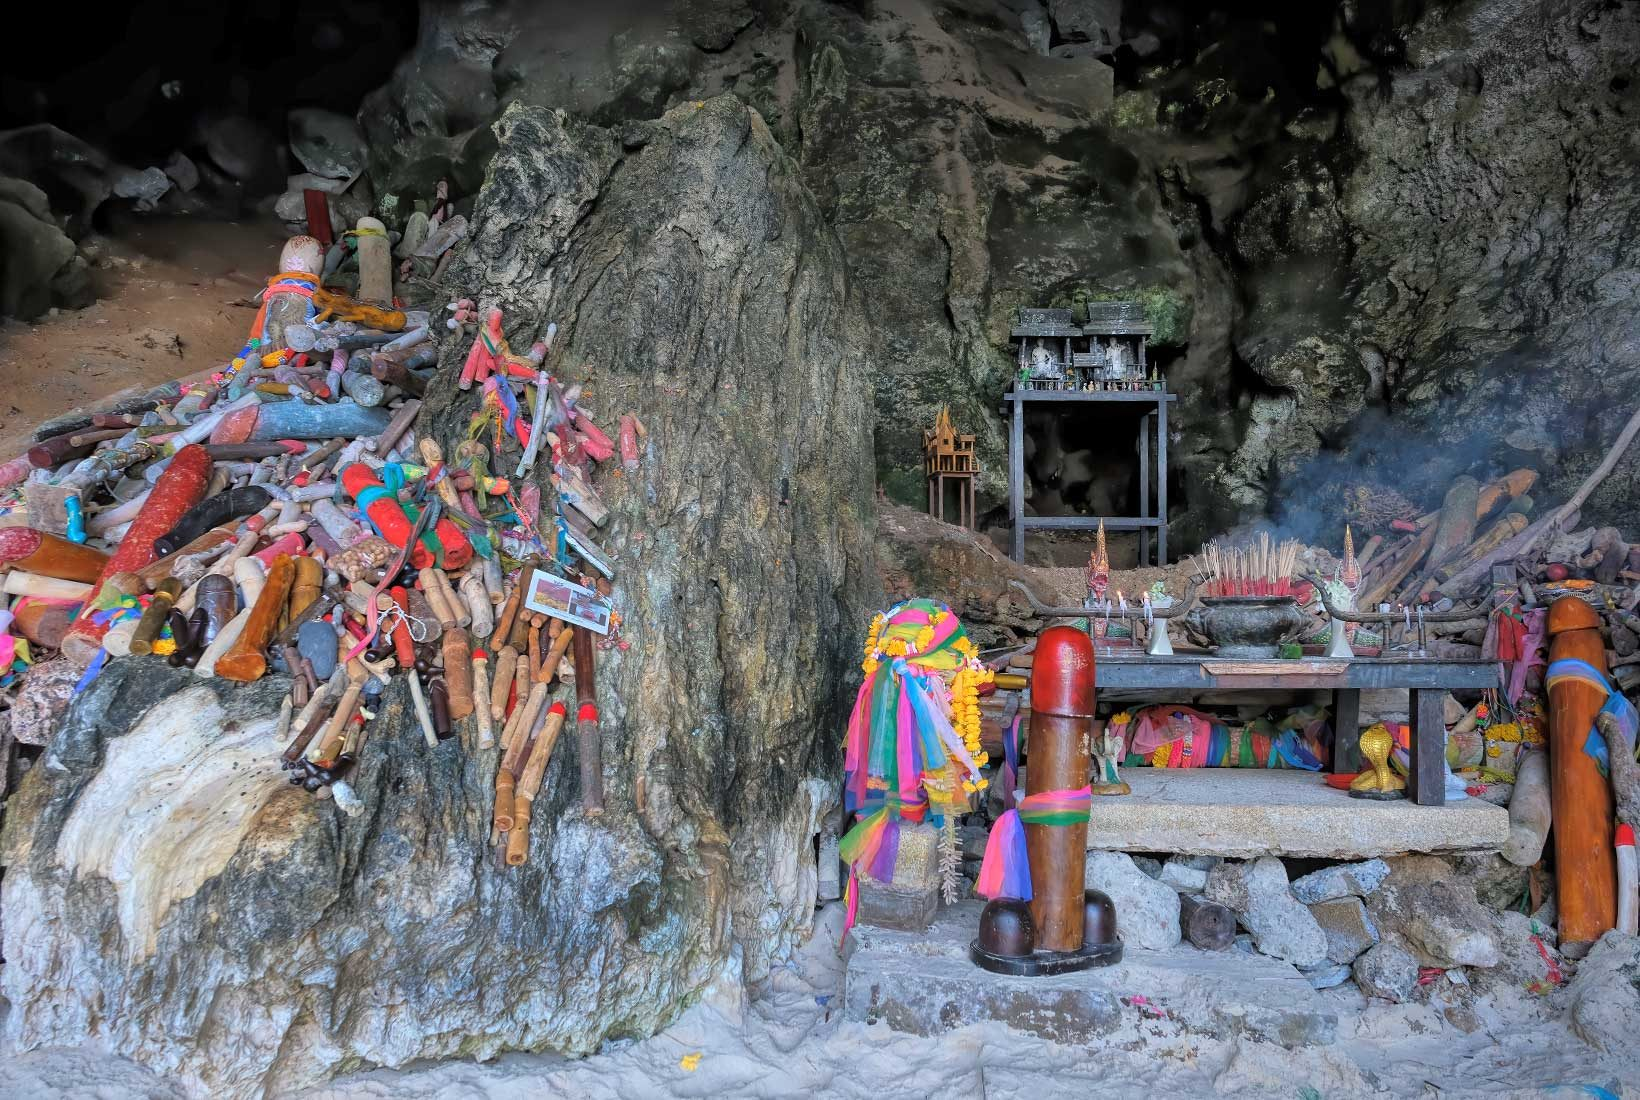 According to local legend, a hermit used magic to turn a bride into Phranang Cave at wedding gone bad. Today many Thais come to Phranang Cave to pray for love and add to the stack of wooden penises that surround the altar.